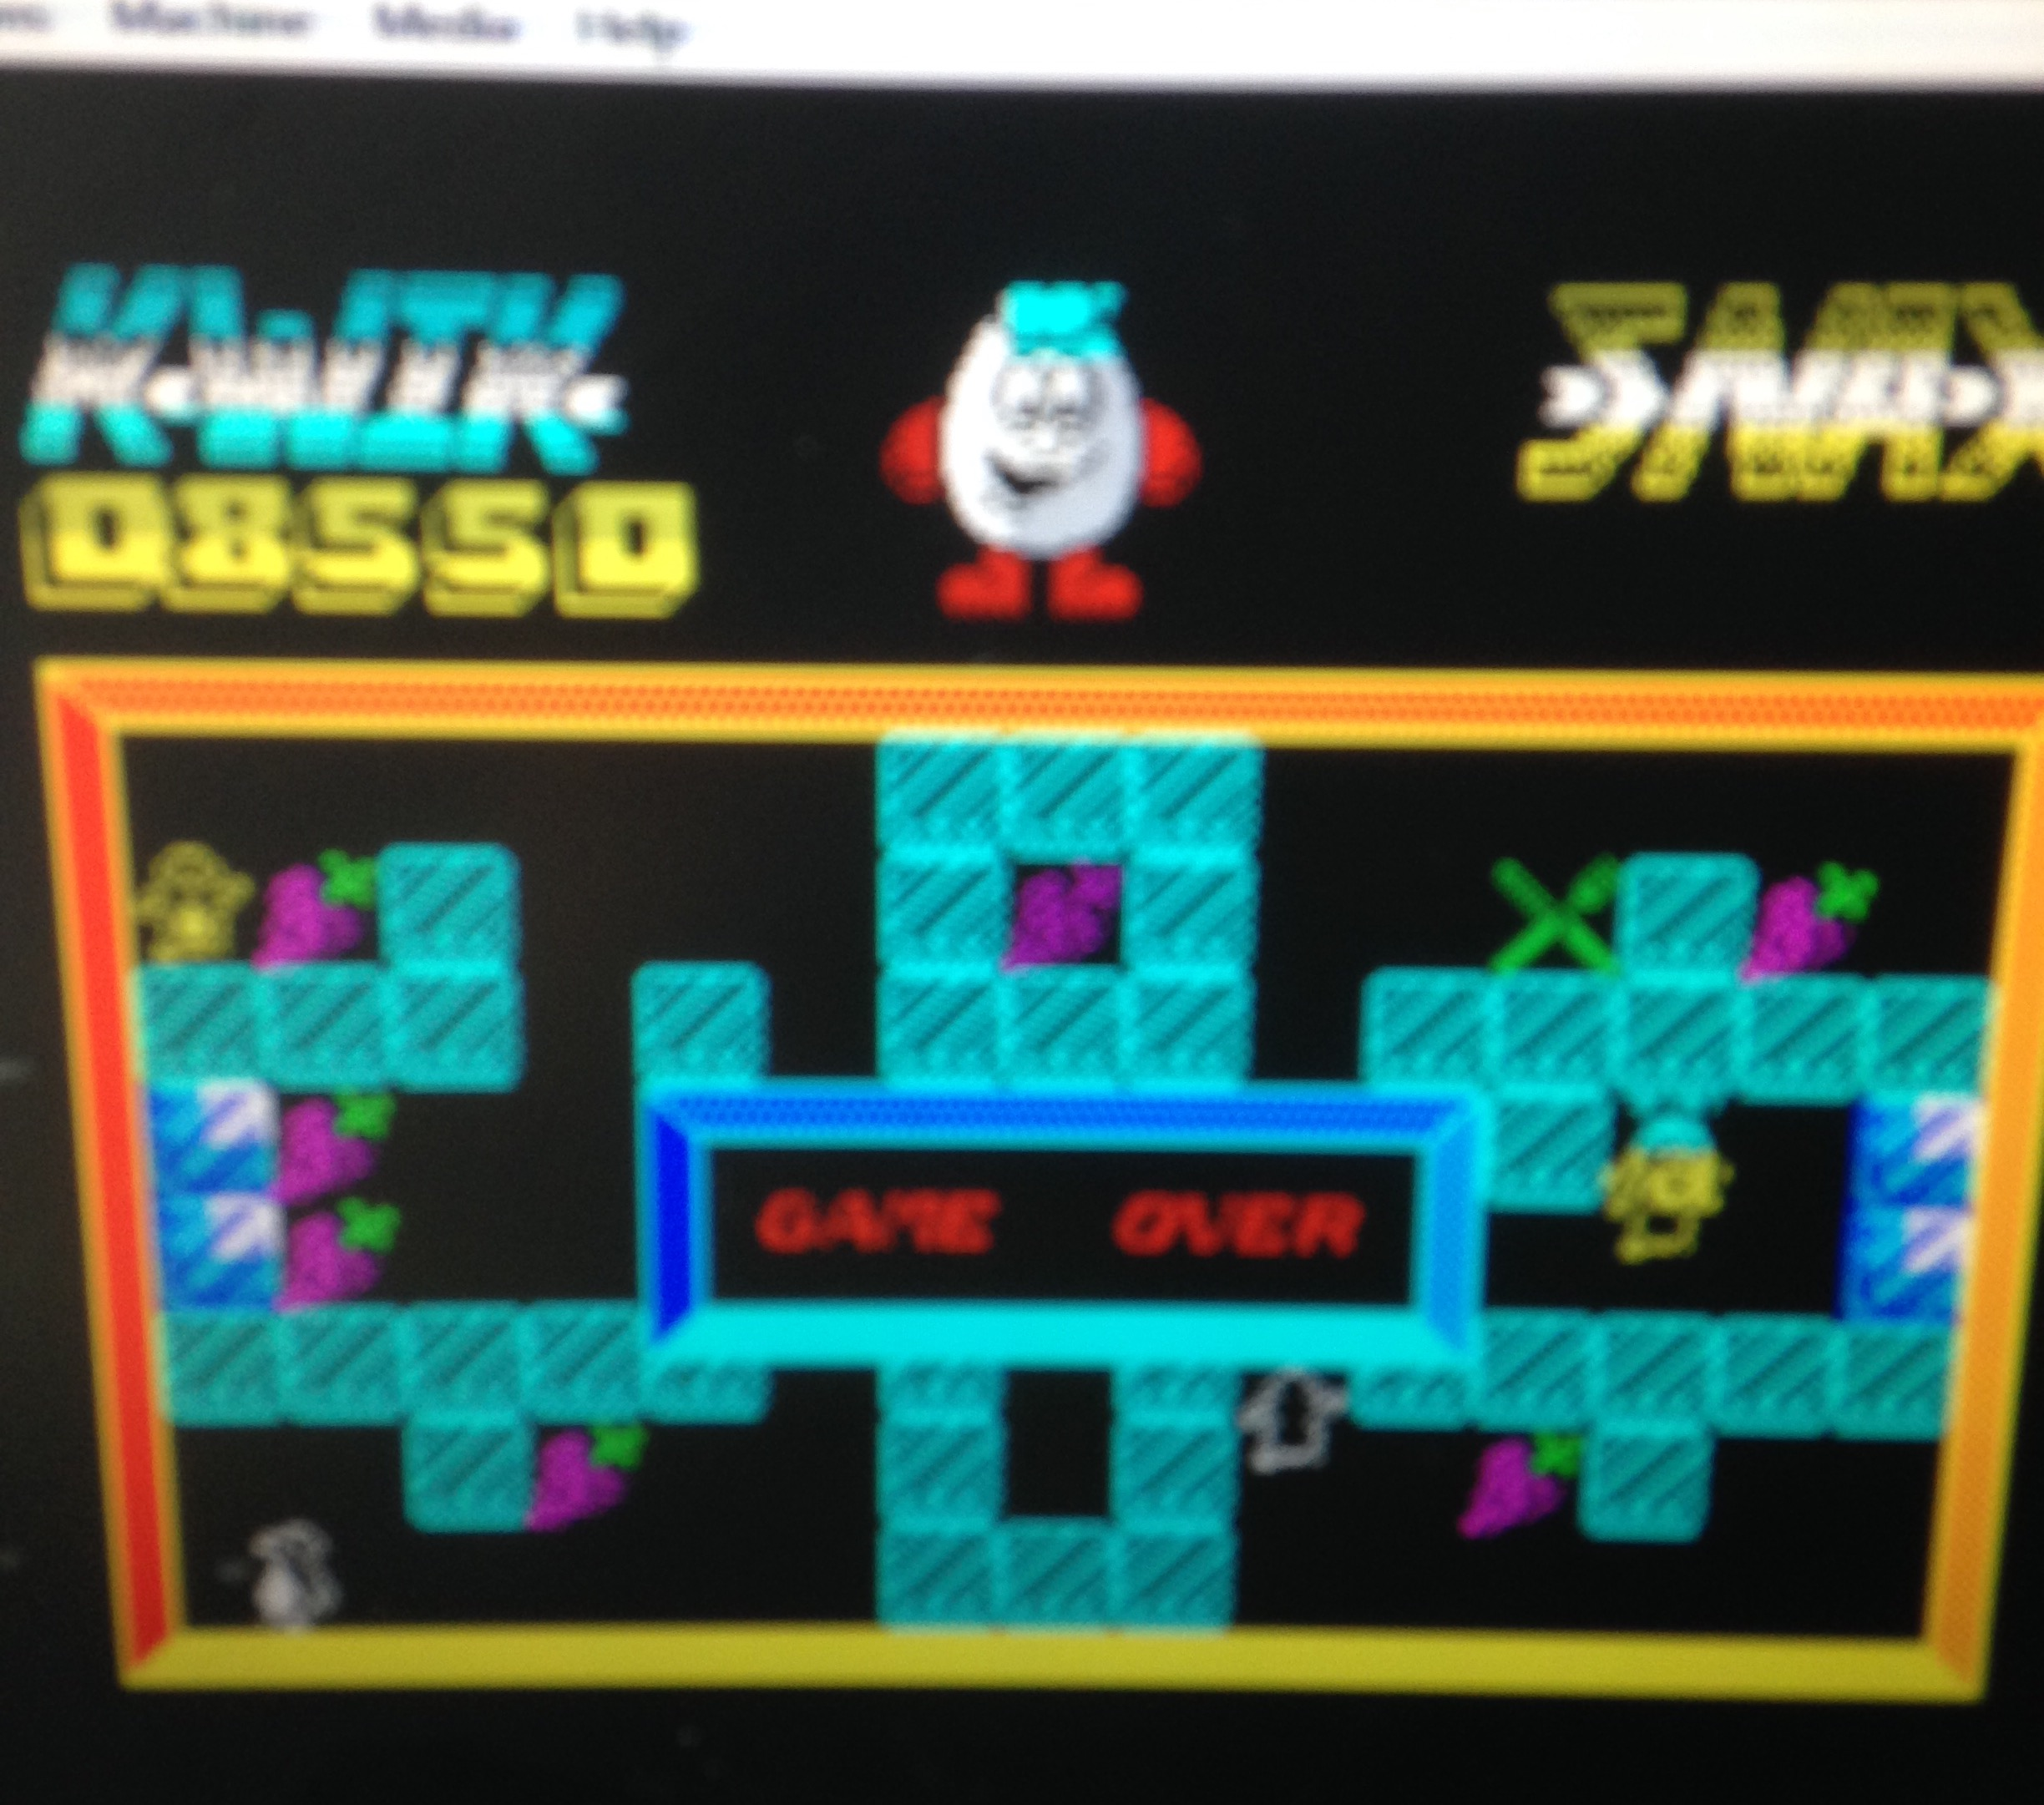 mechafatnick: Kwik Snax (ZX Spectrum Emulated) 8,550 points on 2015-02-11 01:34:33